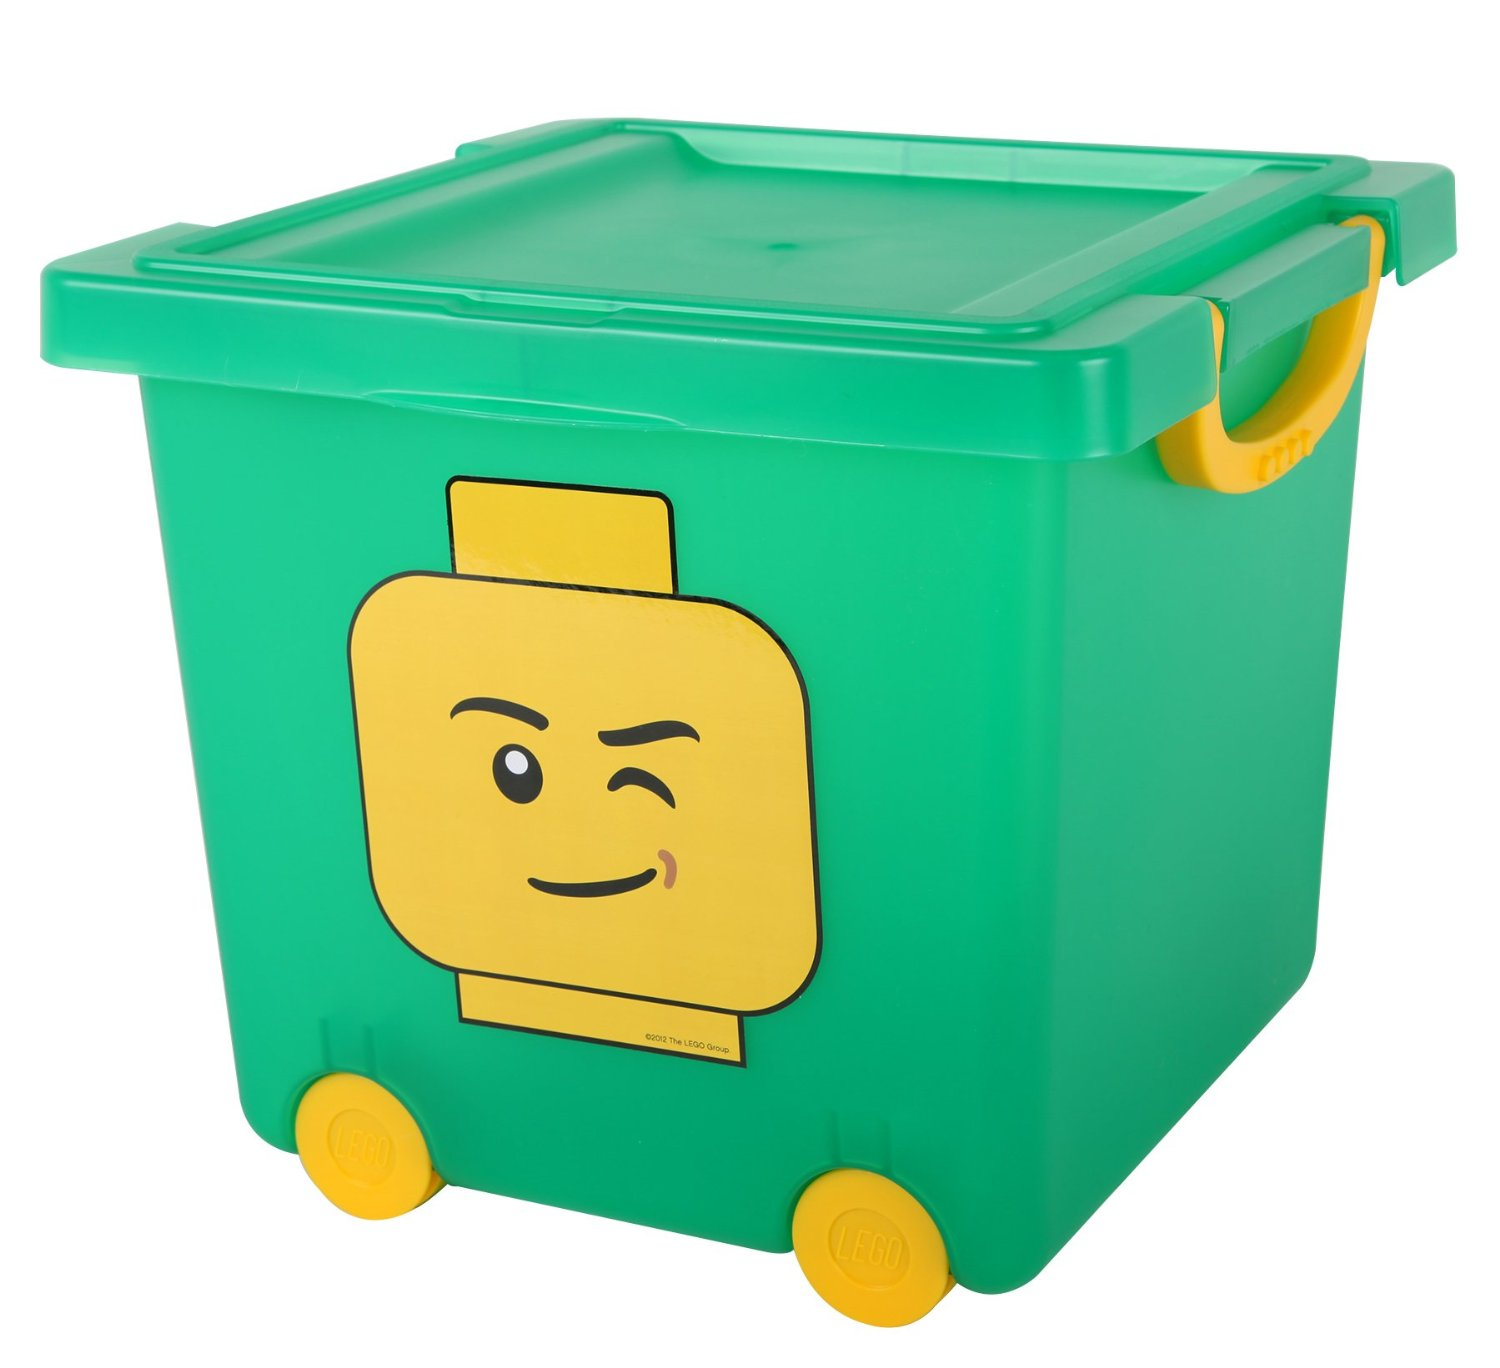 71So5+-lf9L._SL1500_  sc 1 st  Box4Blox & Shopping For IRIS LEGO Square Stacking Basket with Lid and Wheels ...